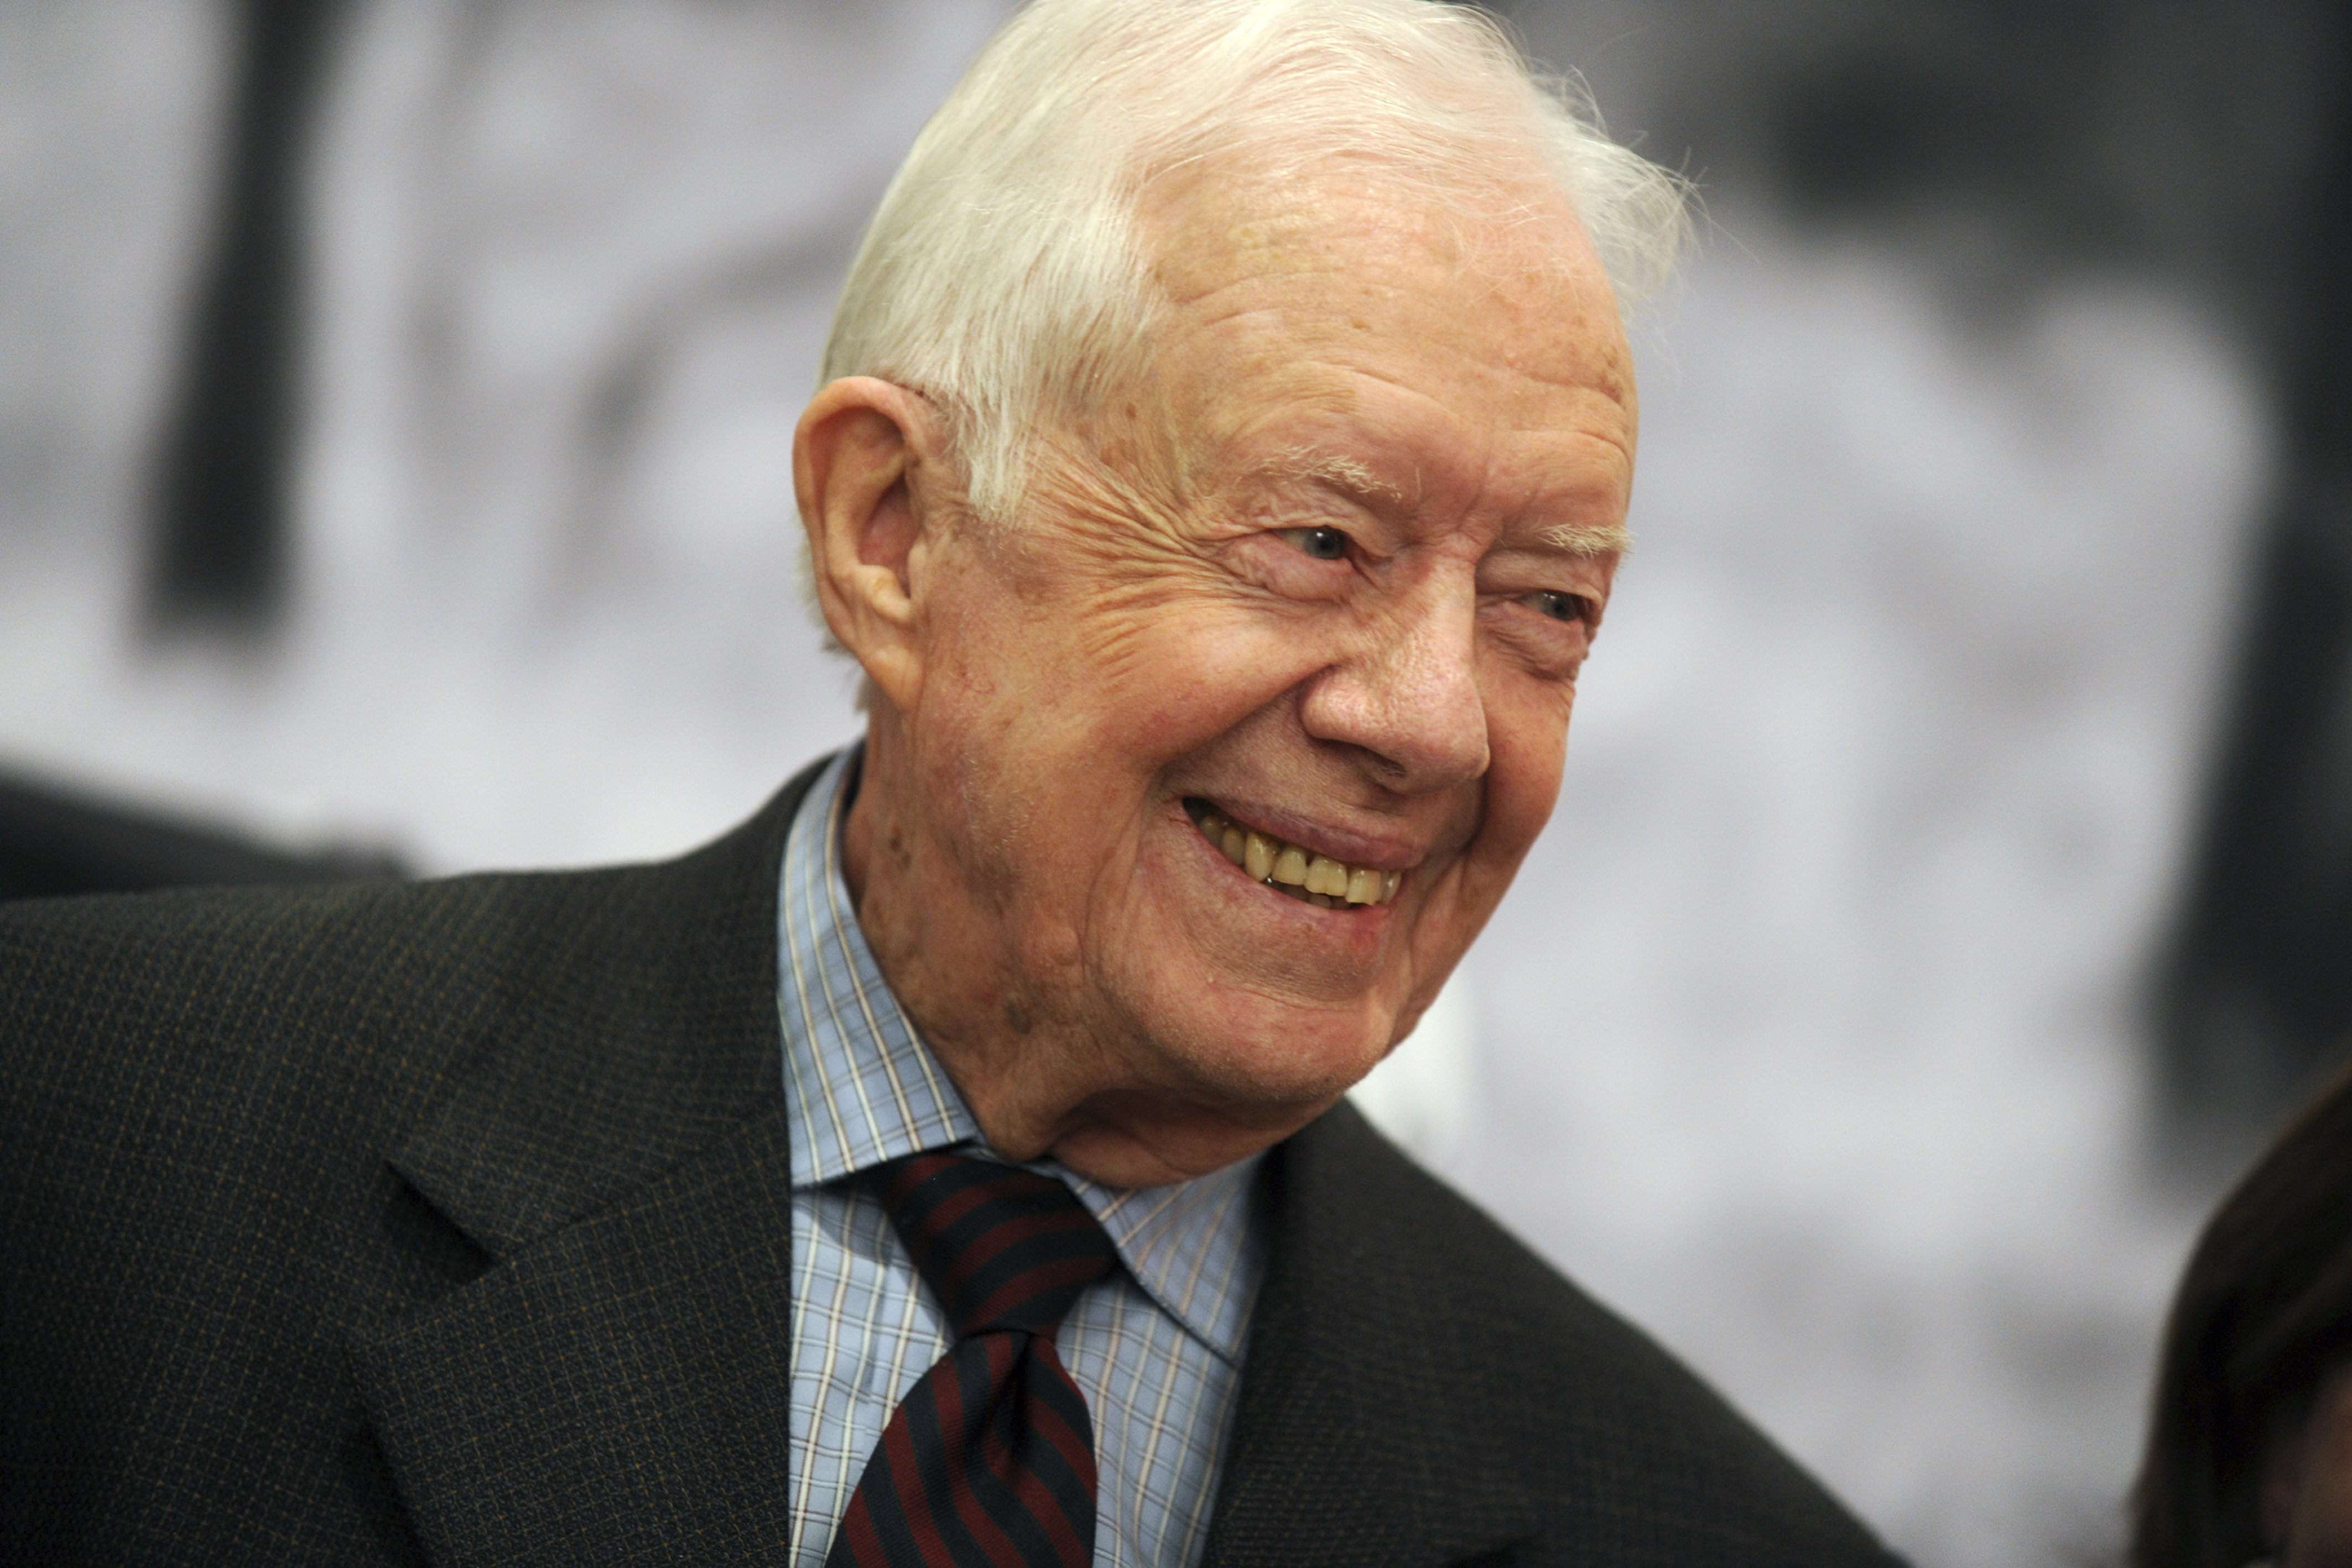 Jimmy Carter at American Museum of Natural History on Jan. 12, 2015 in New York City.